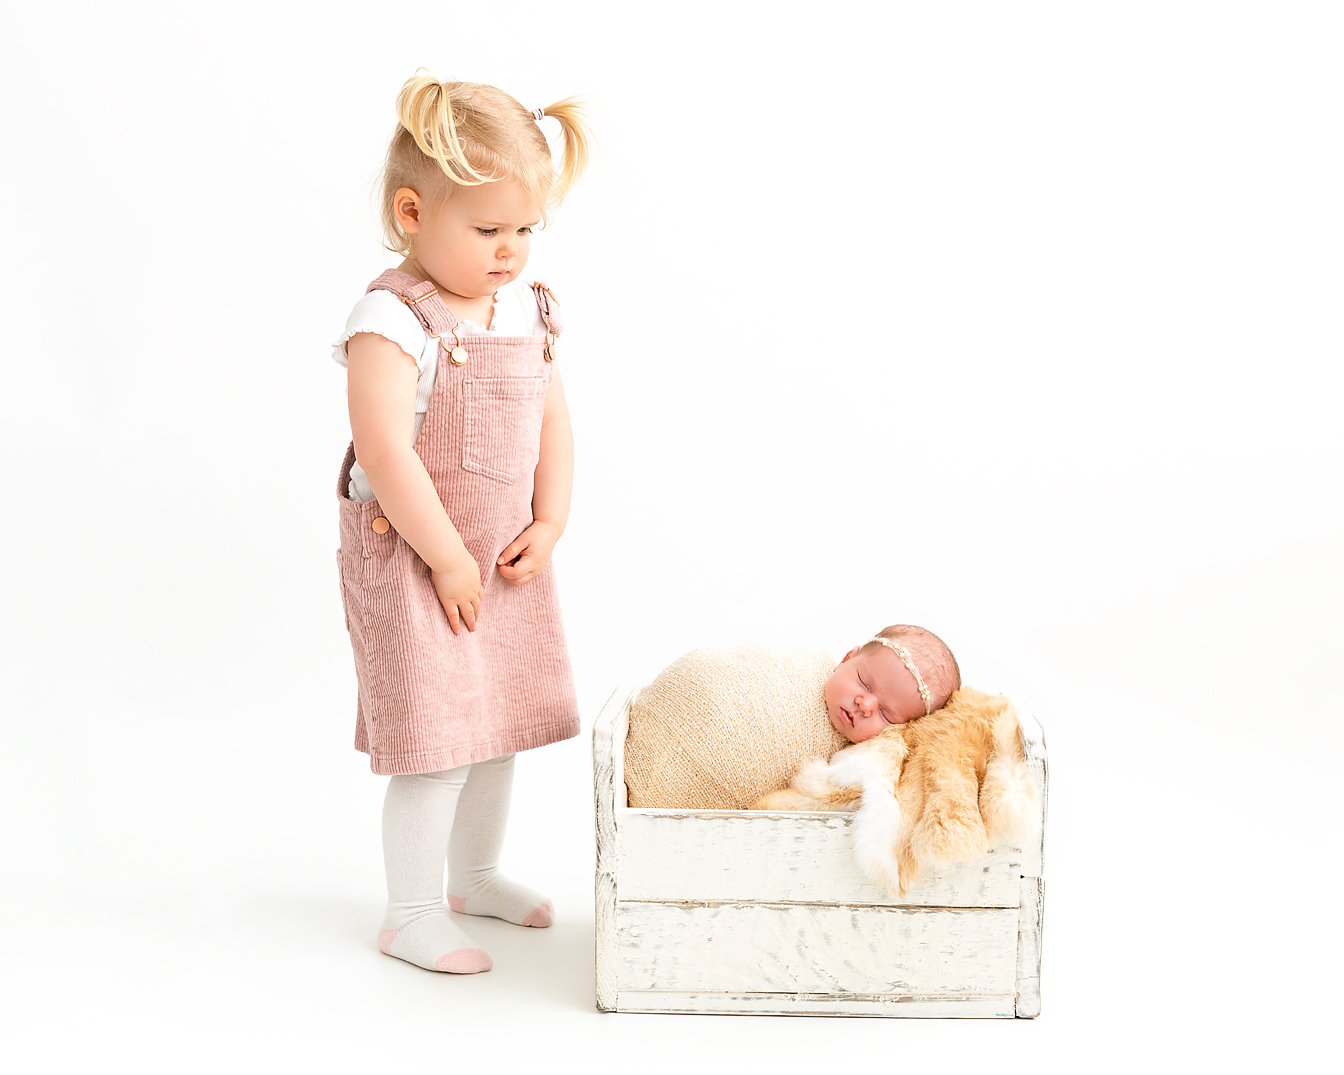 Edinburgh Newborn Baby Family Photographer Lothians Fife Scotland new born Diana Baker Photography